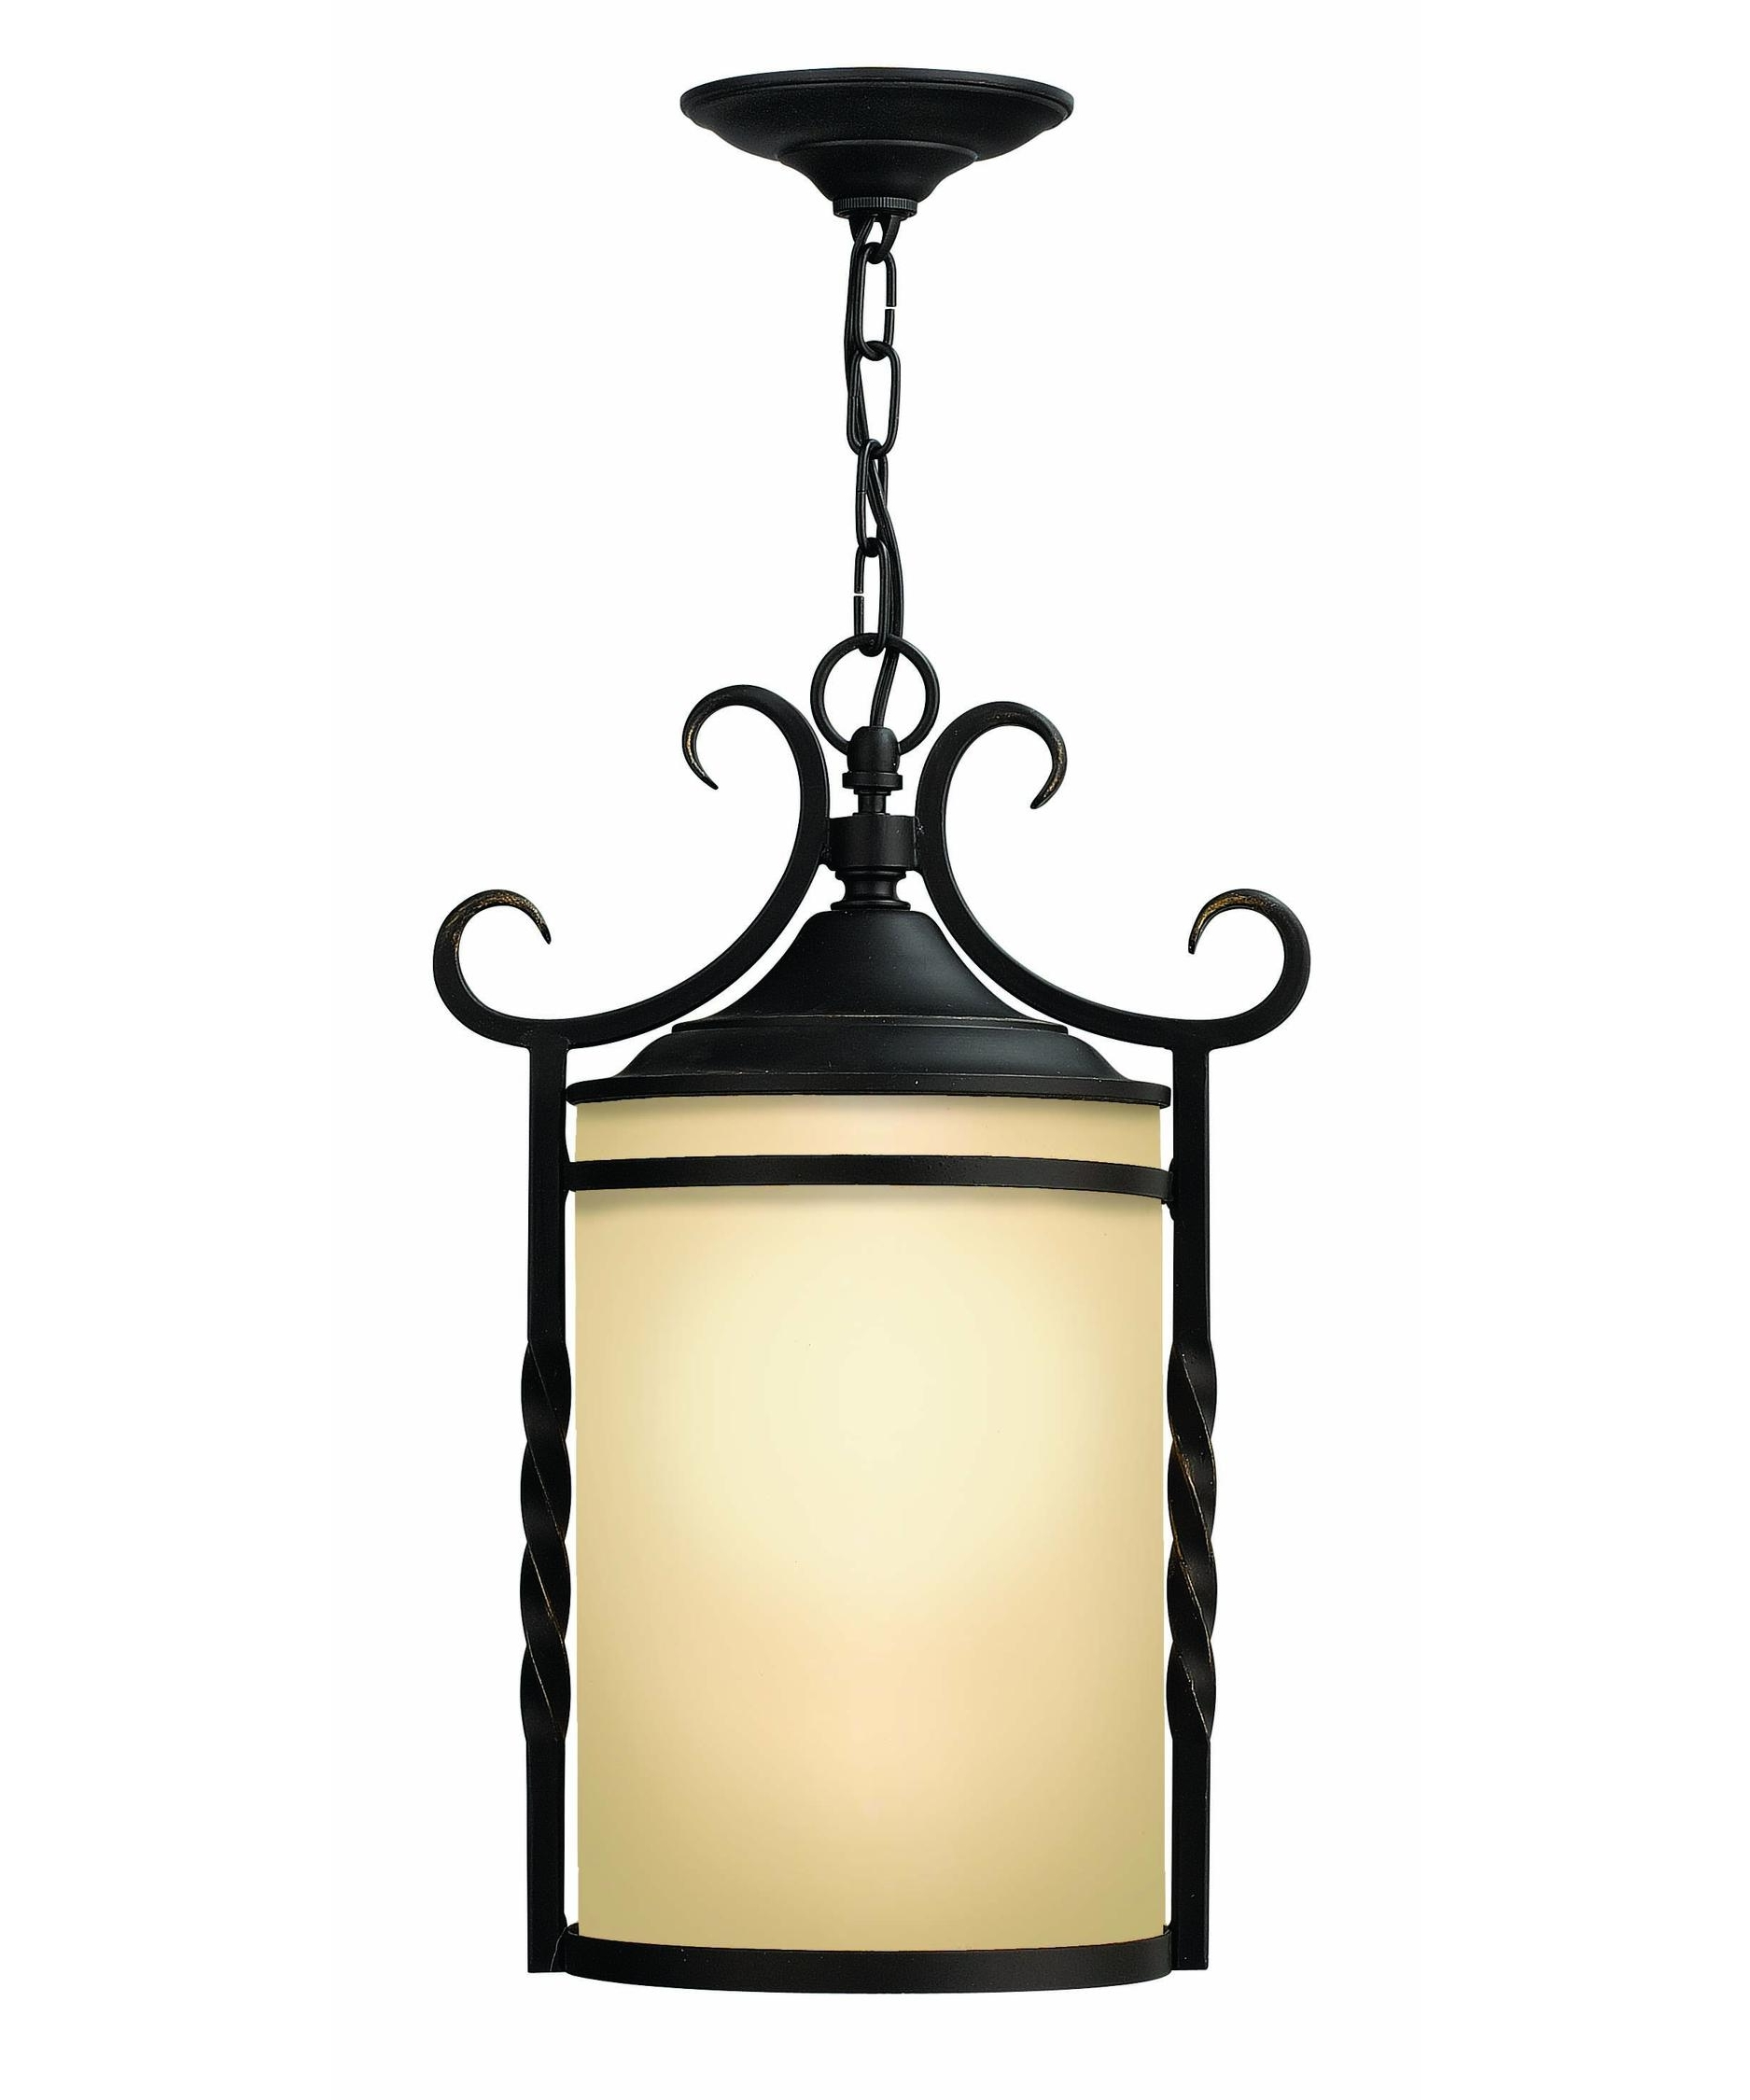 Fashionable Hinkley Lighting 1142 Casa Exterior 12 Inch Wide 1 Light Outdoor With Regard To Hanging Porch Hinkley Lighting (View 4 of 20)